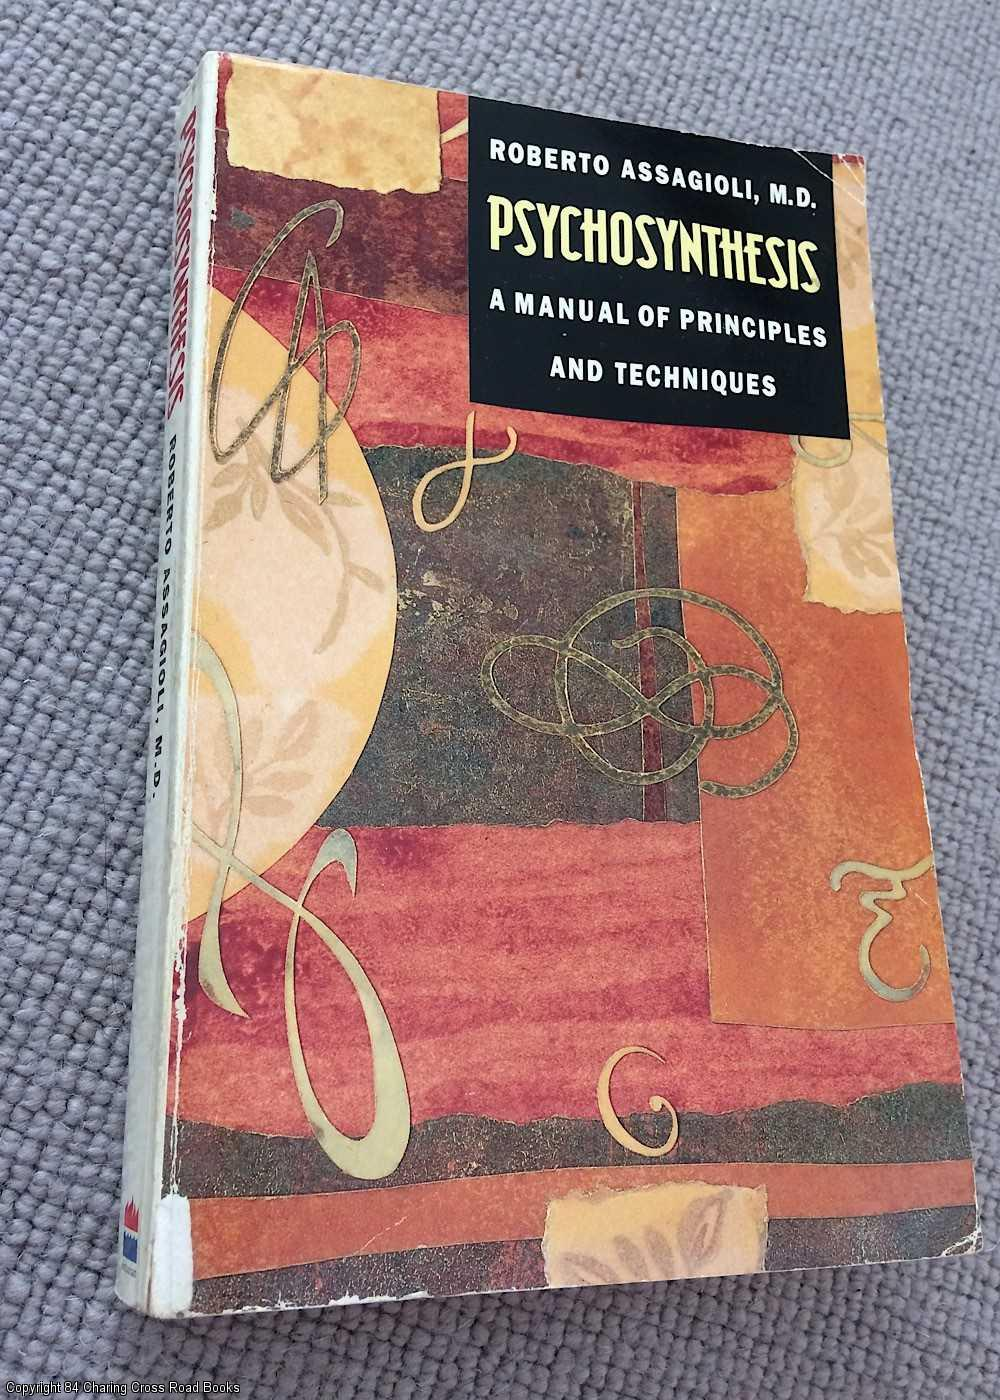 ASSAGIOLI, ROBERTO, M.D. - Psychosynthesis: A Manual of Principles and Techniques